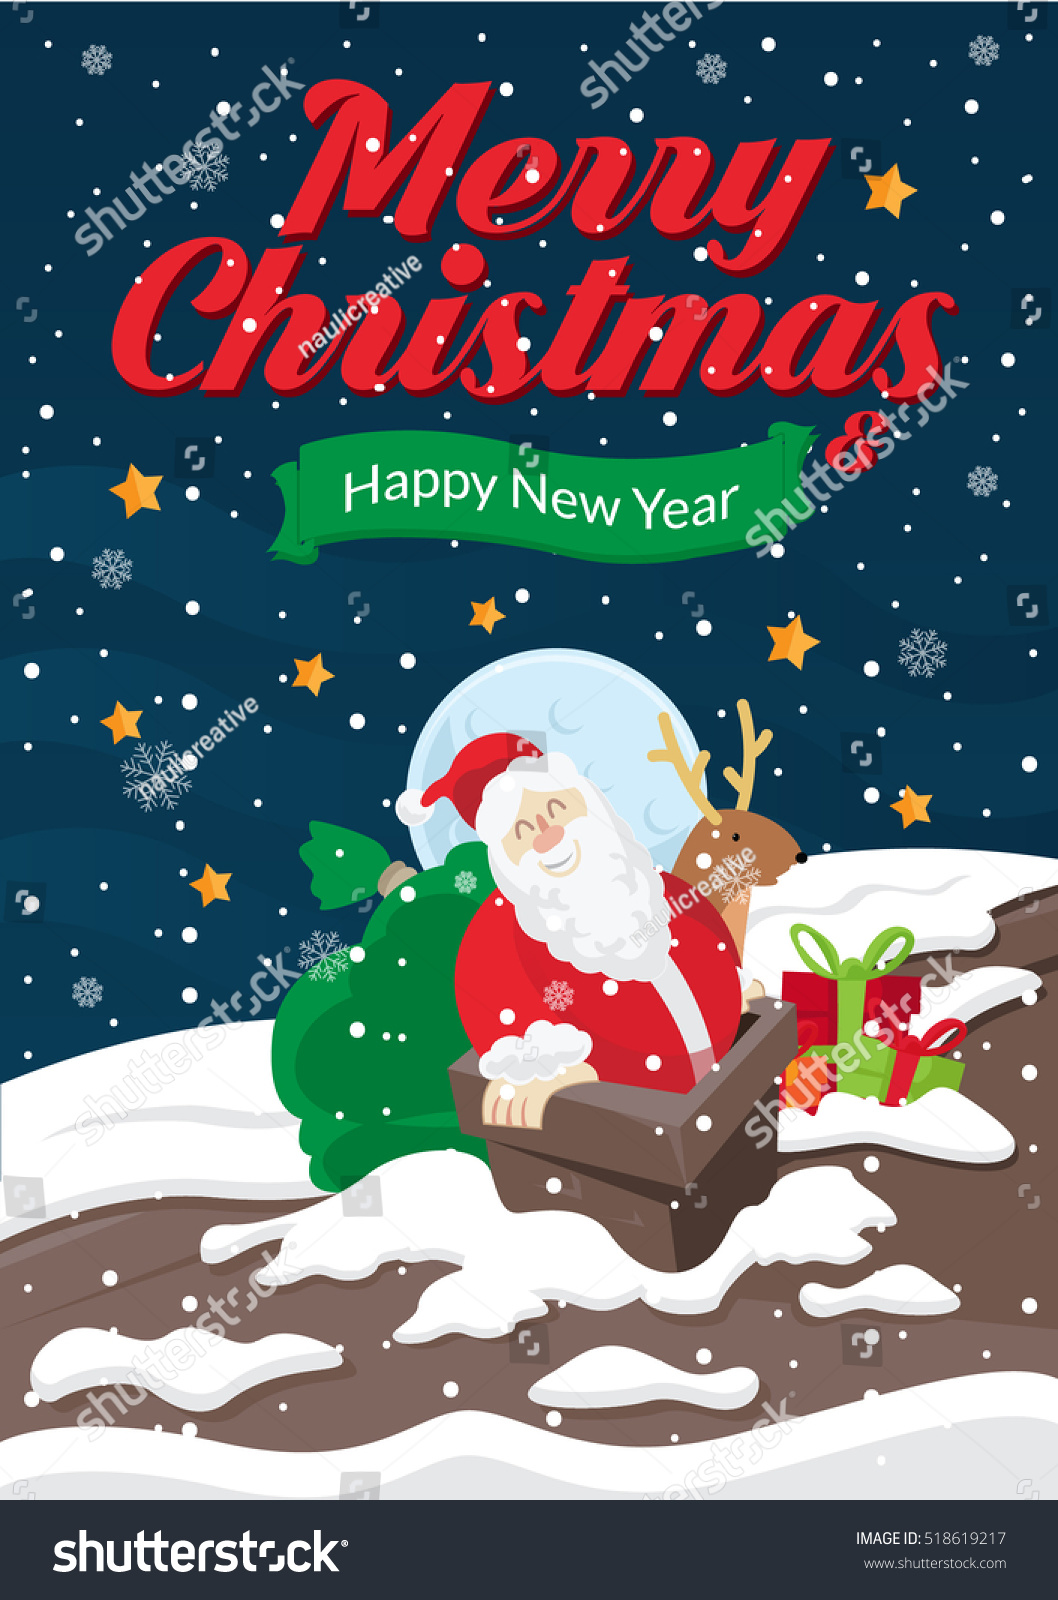 Modern nice detail merry christmas card stock vector royalty free modern nice detail merry christmas card santa claus illustration suitable for brochure flyer m4hsunfo